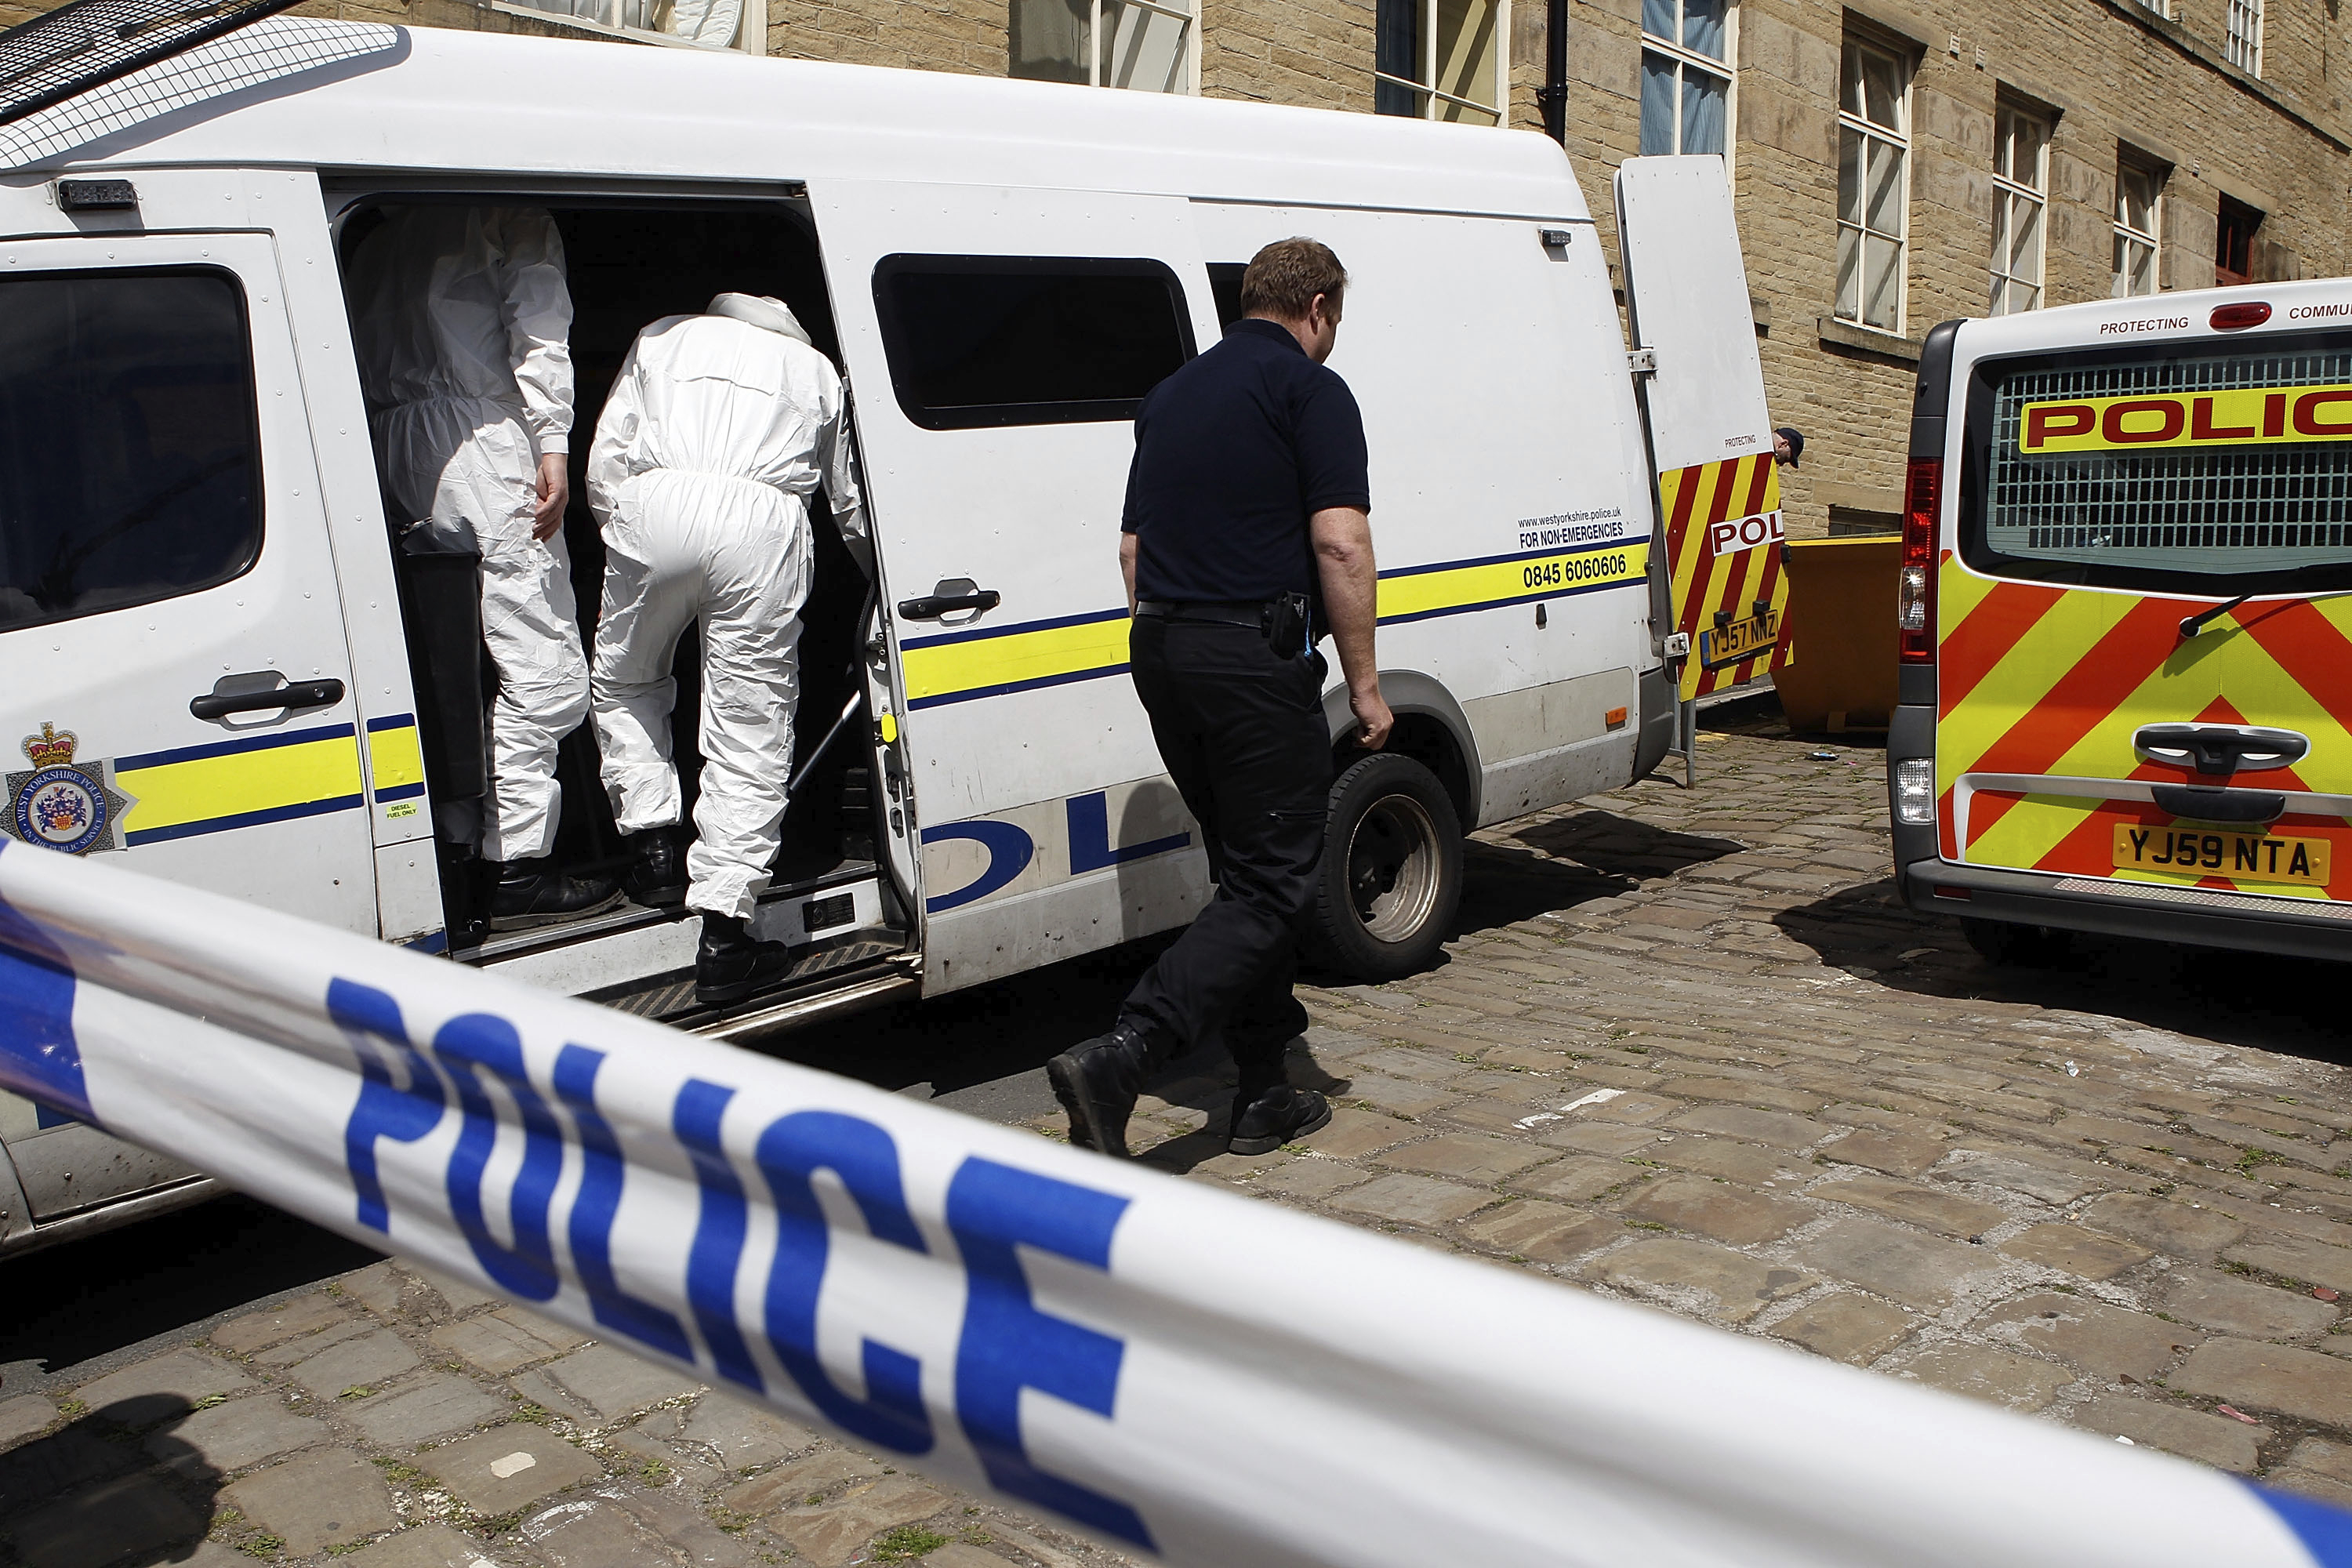 PC HUNT FINDS HUMAN REMAINS